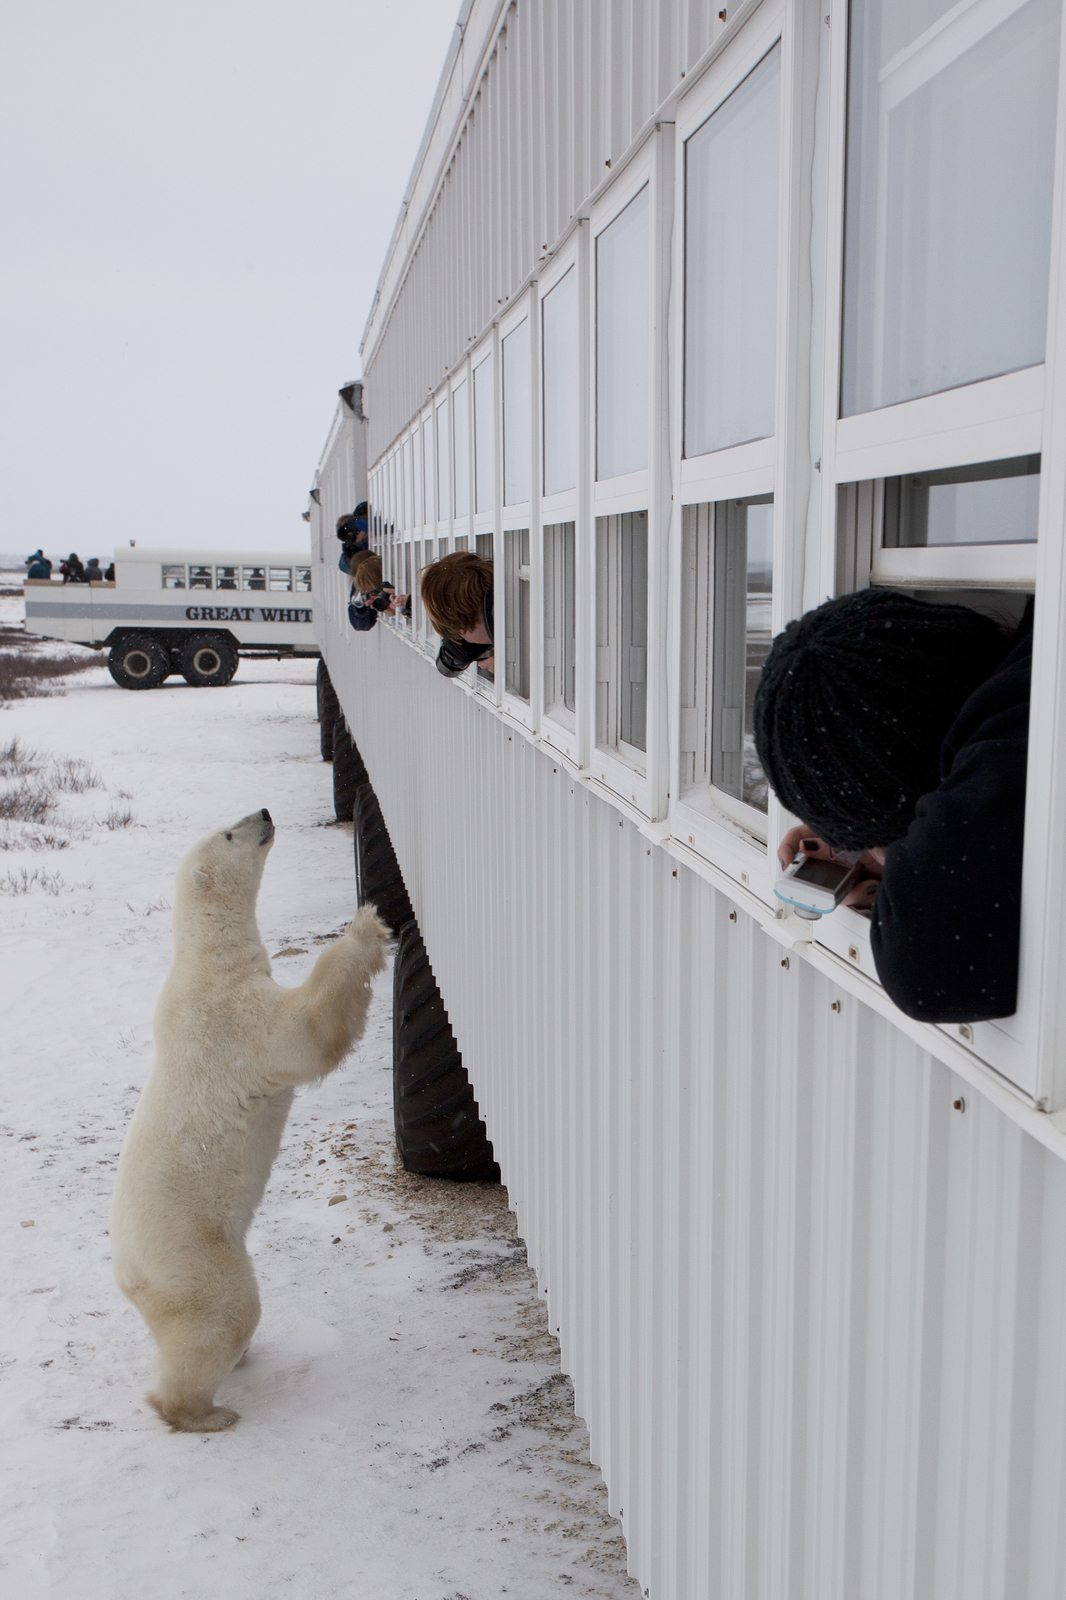 A polar bear standing on its hind legs near a Polar Rover